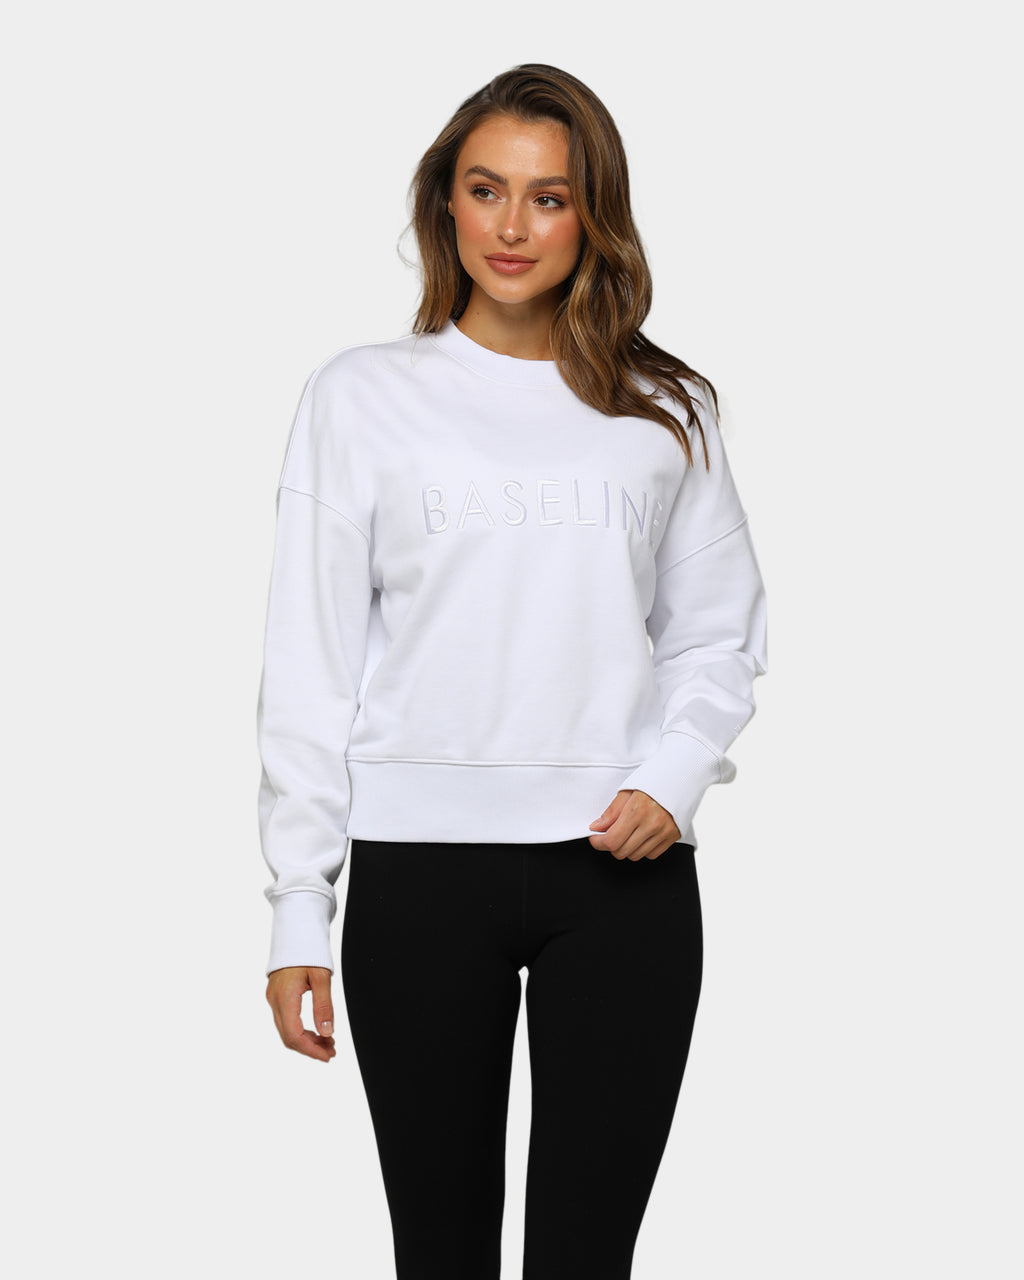 Baseline Stand Out Sweater White